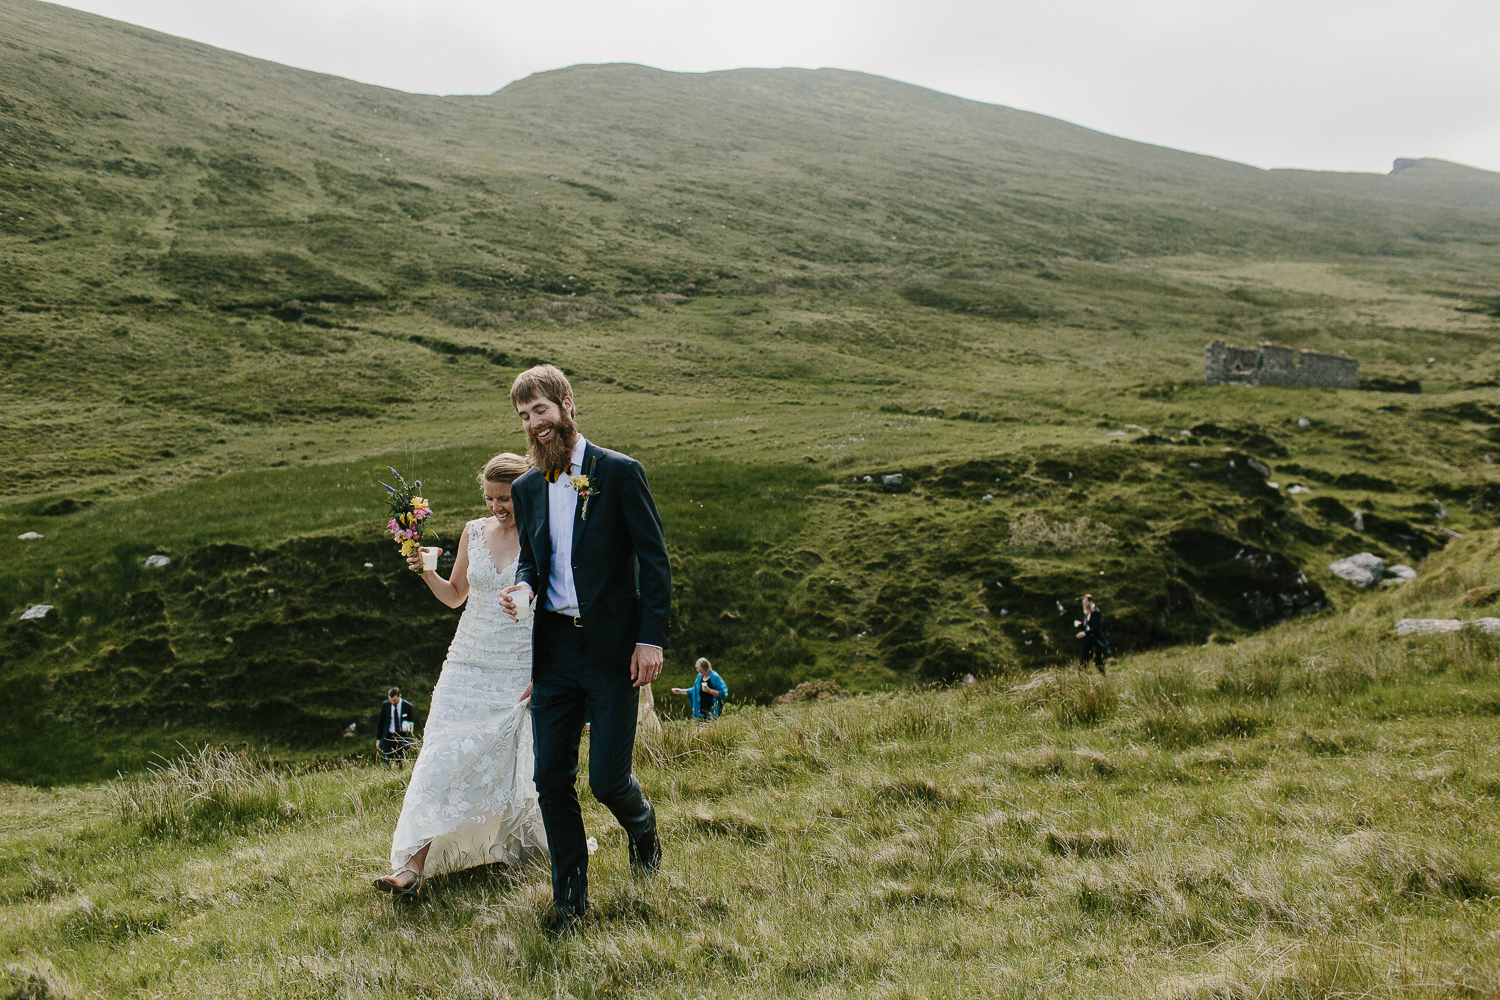 Achill-Island-Adventure-Wedding-Photographer-259.jpg